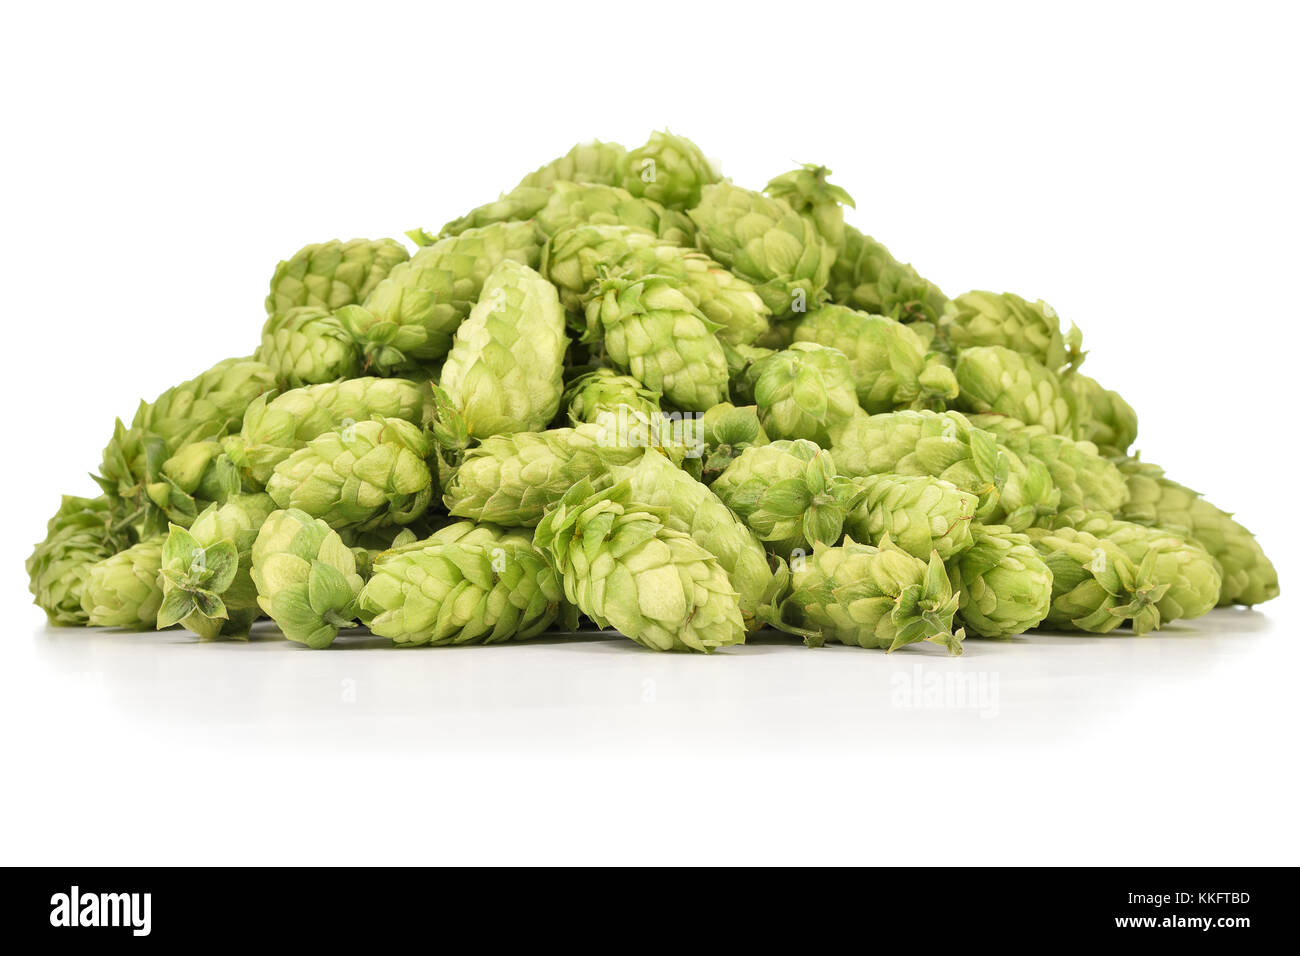 Heap of fresh green hops (Humulus lupulus) isolated on white background. Pile of hops, ingredient for brewery industry. - Stock Image